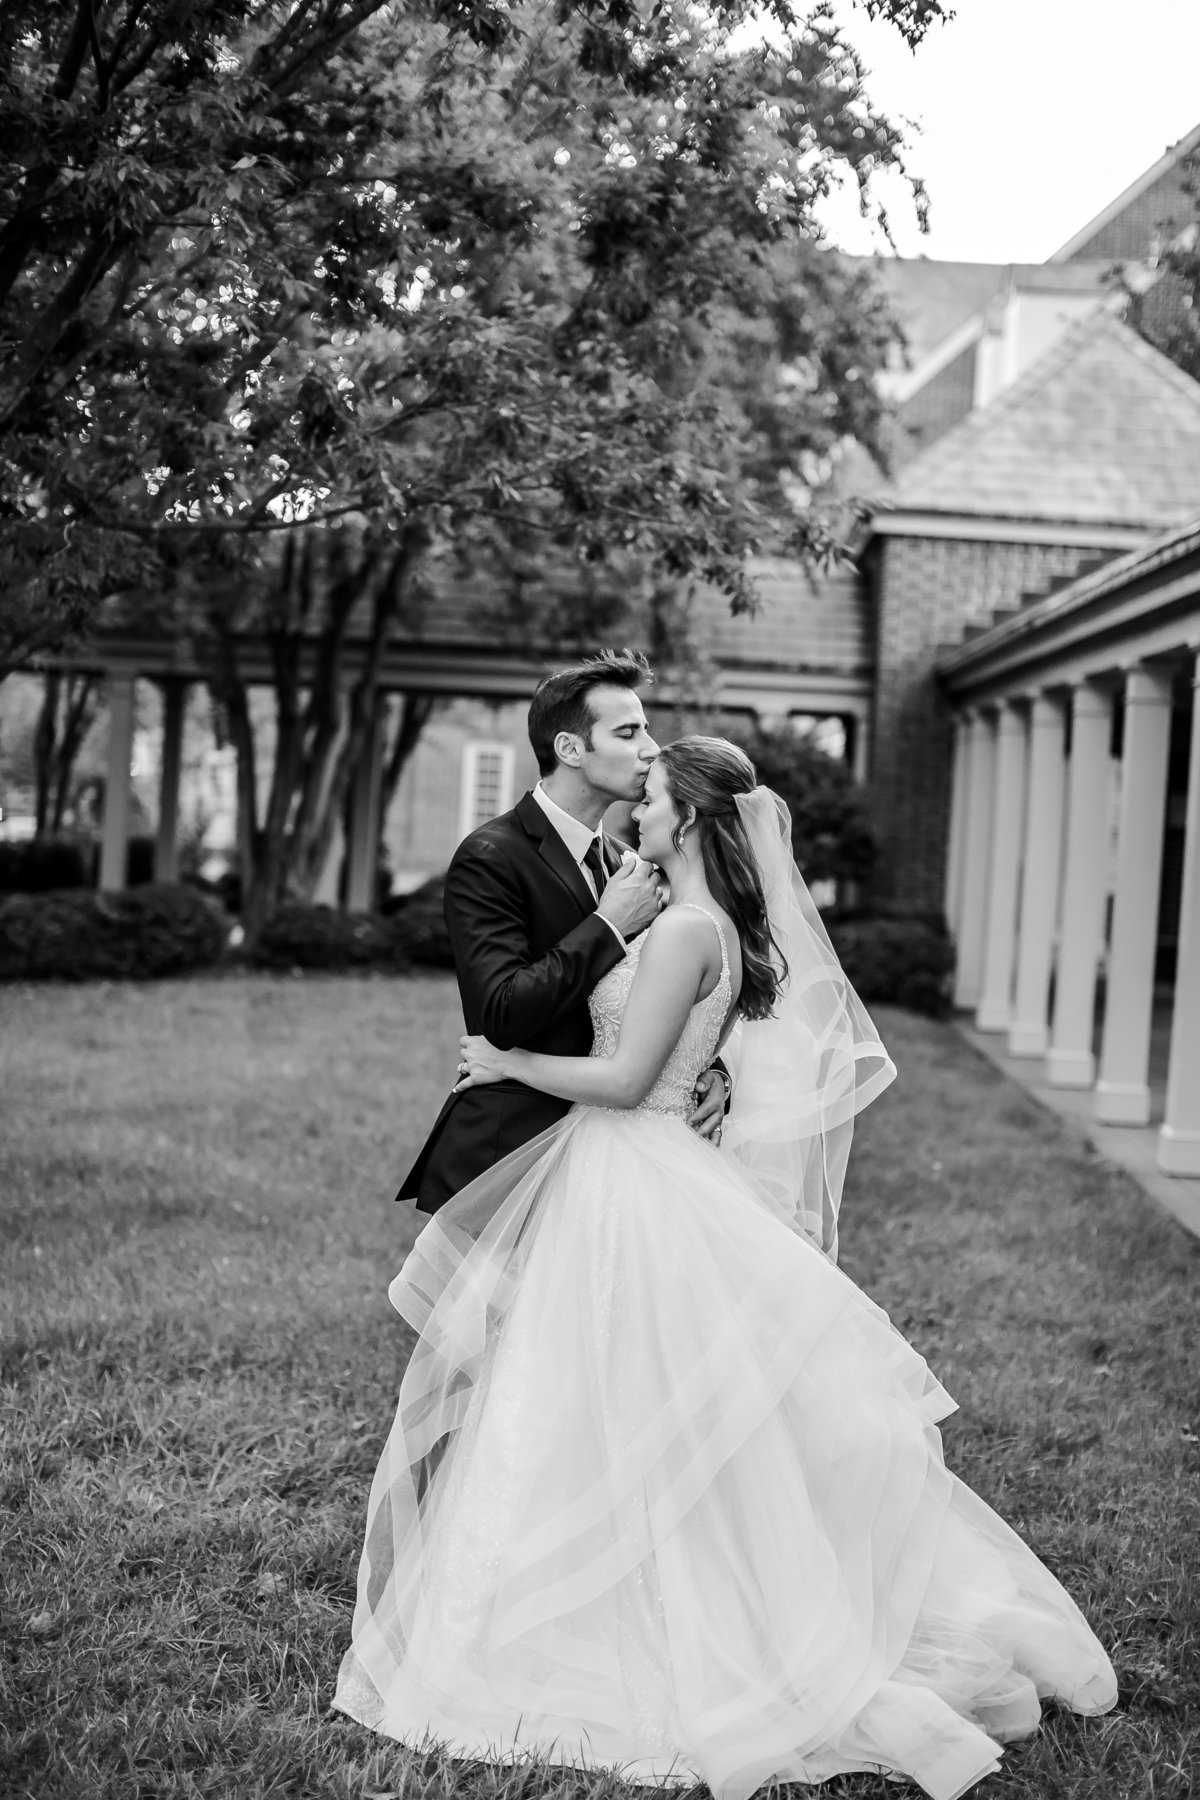 meghan lupyan hampton roads wedding photographer181